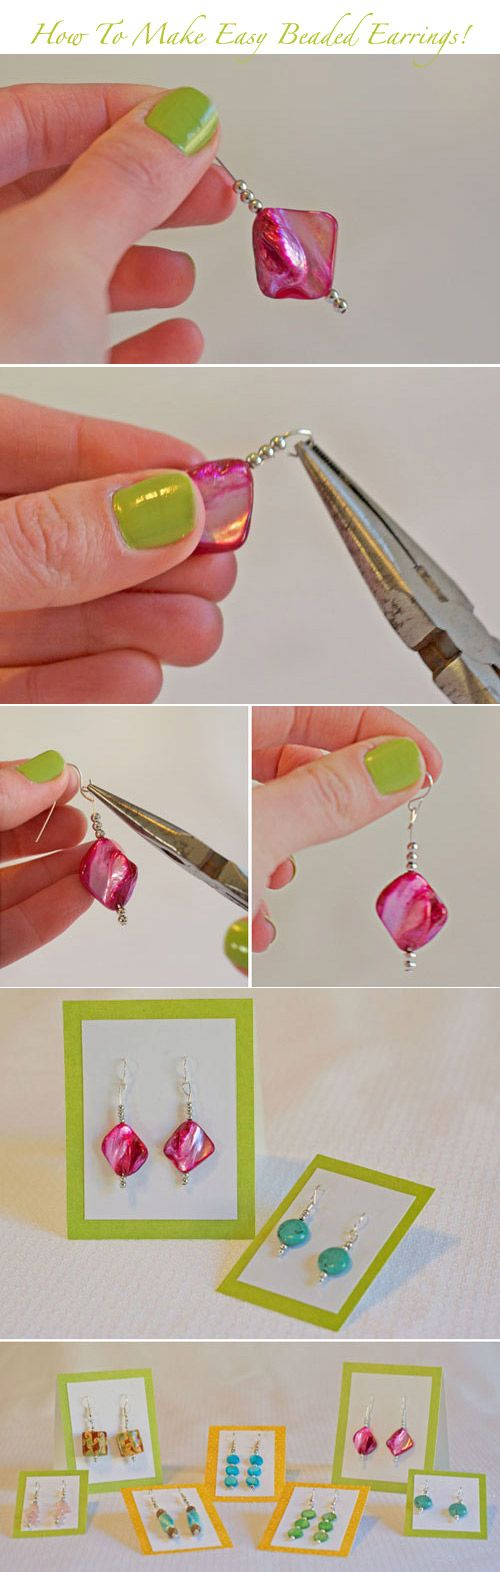 Learn how to make easy DIY beaded earrings in 5 minutes! You can find the whole tutorial here http://www.weddingwindow.com/blog/2012/05/07/diy-5-minute-beaded-earrings/